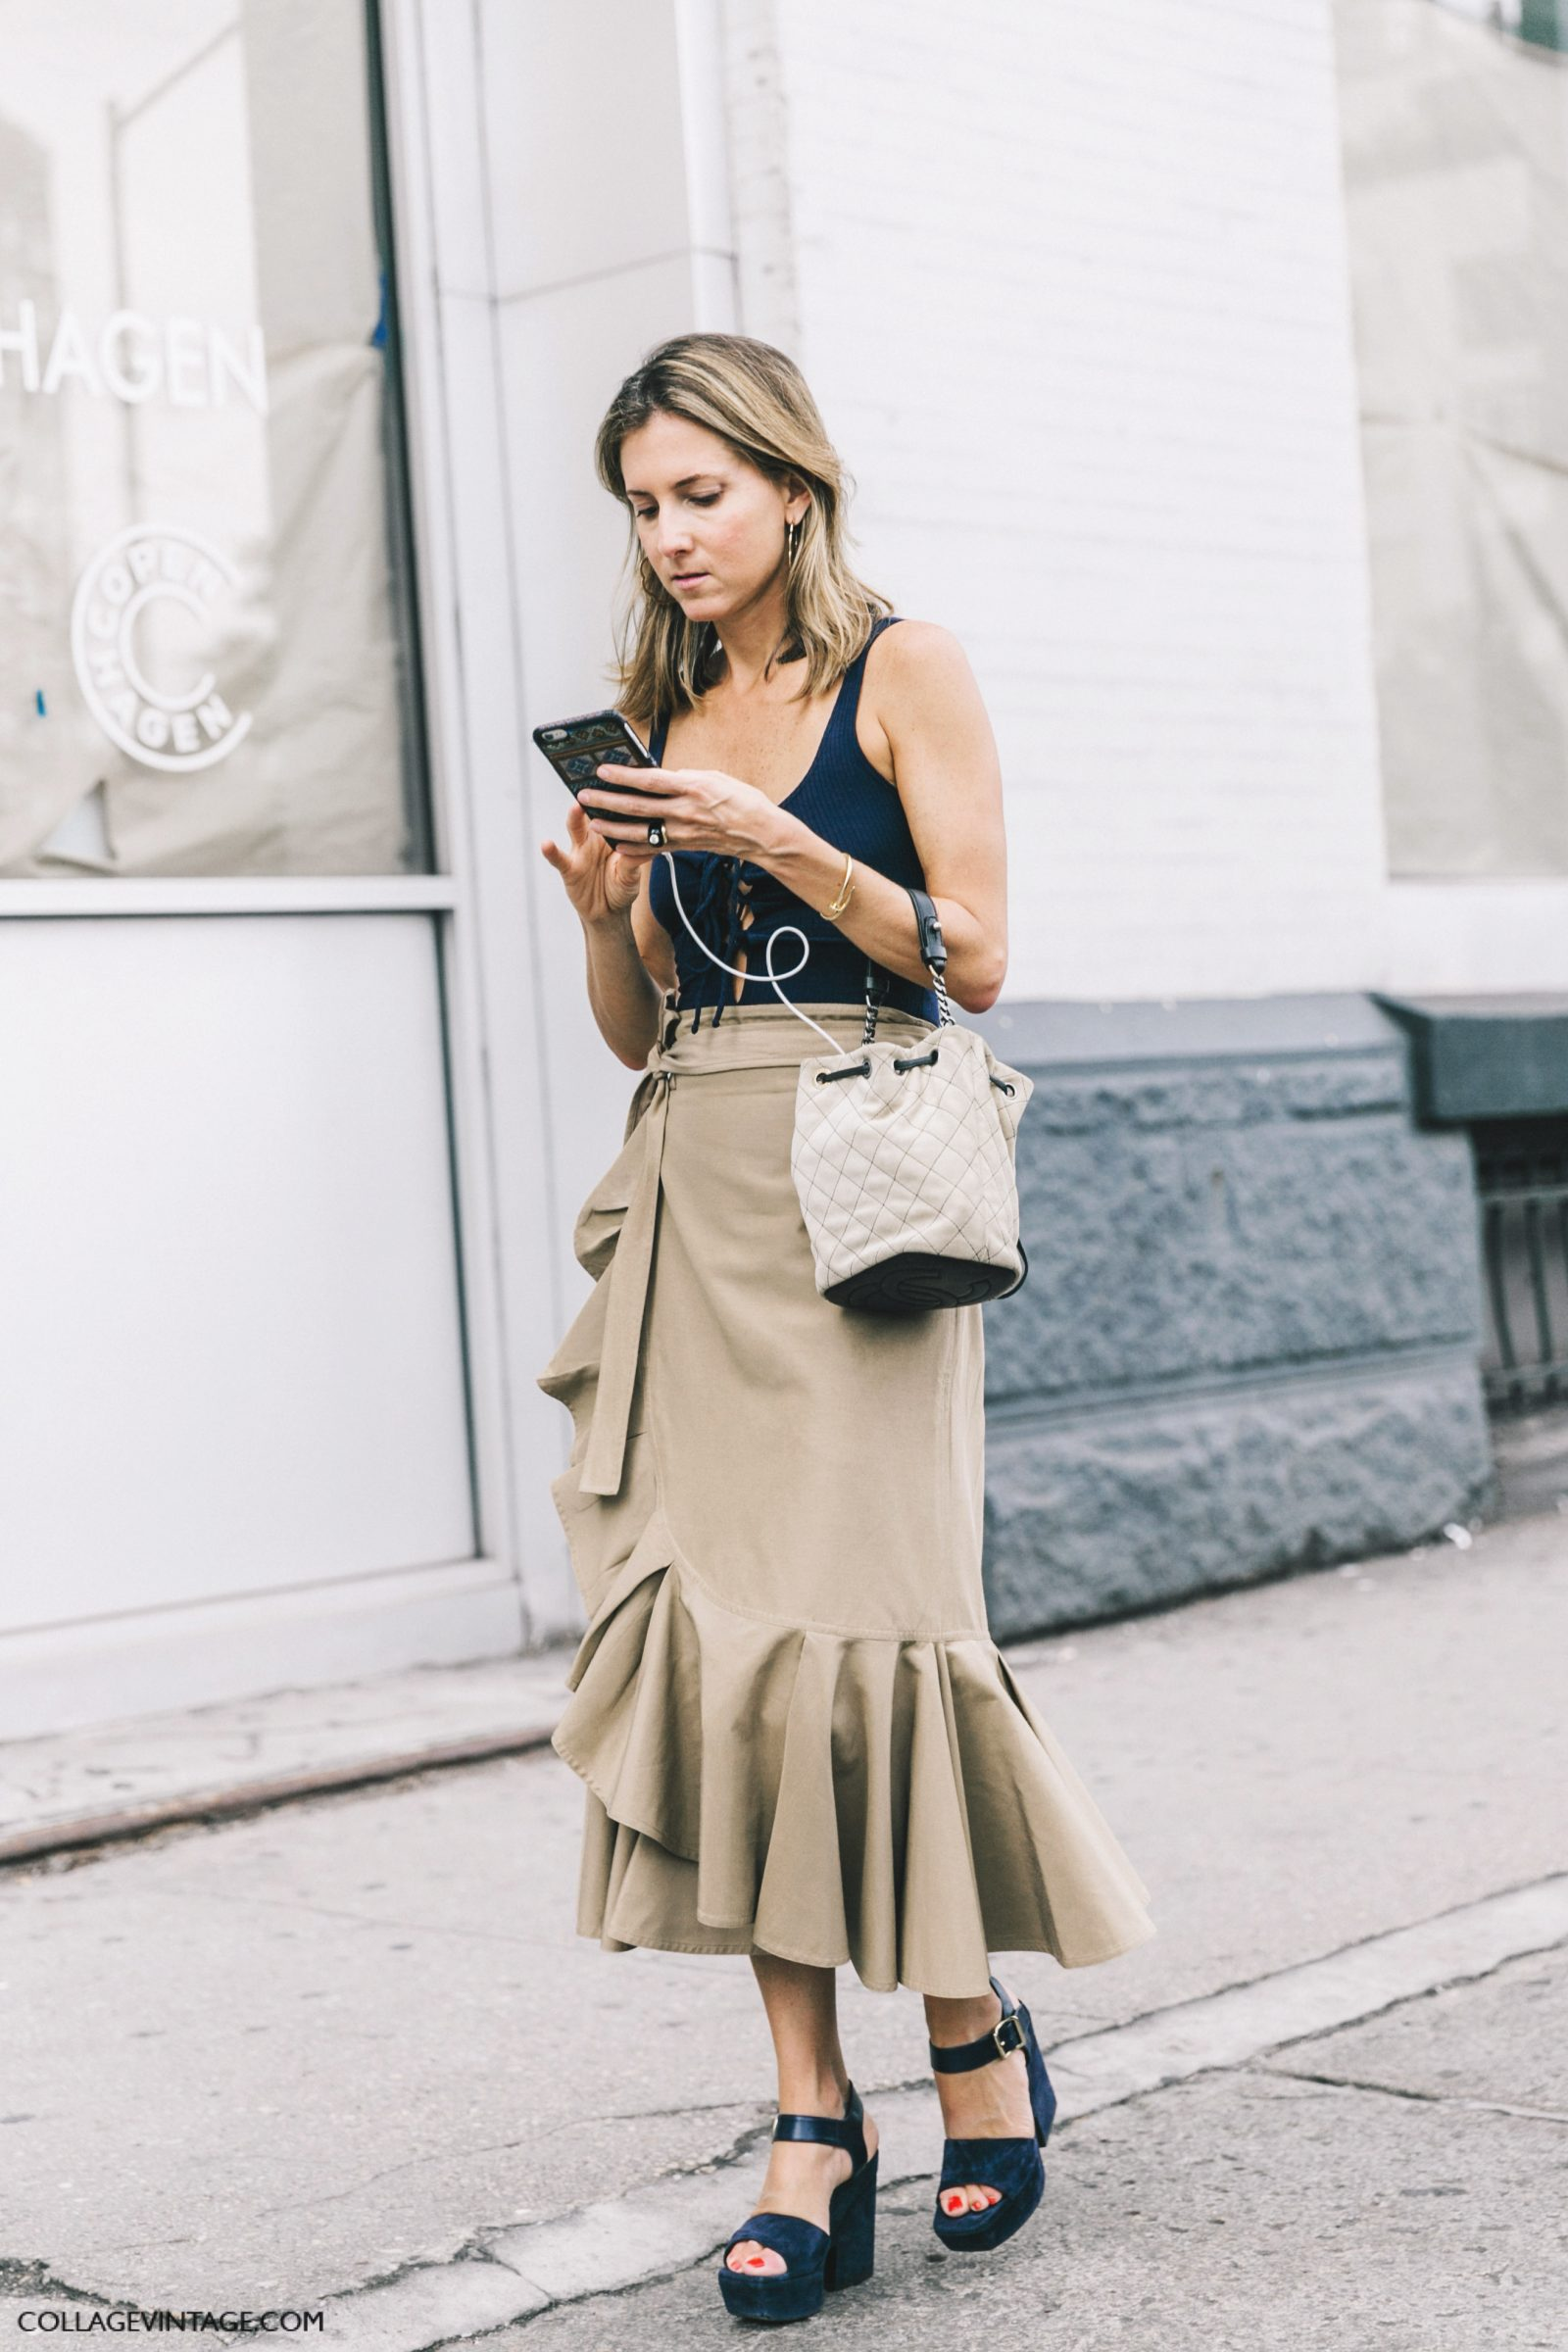 nyfw-new_york_fashion_week_ss17-street_style-outfits-collage_vintage-marina_larroude-prada_sandals-chanel_bag-rufflle_skirt-4